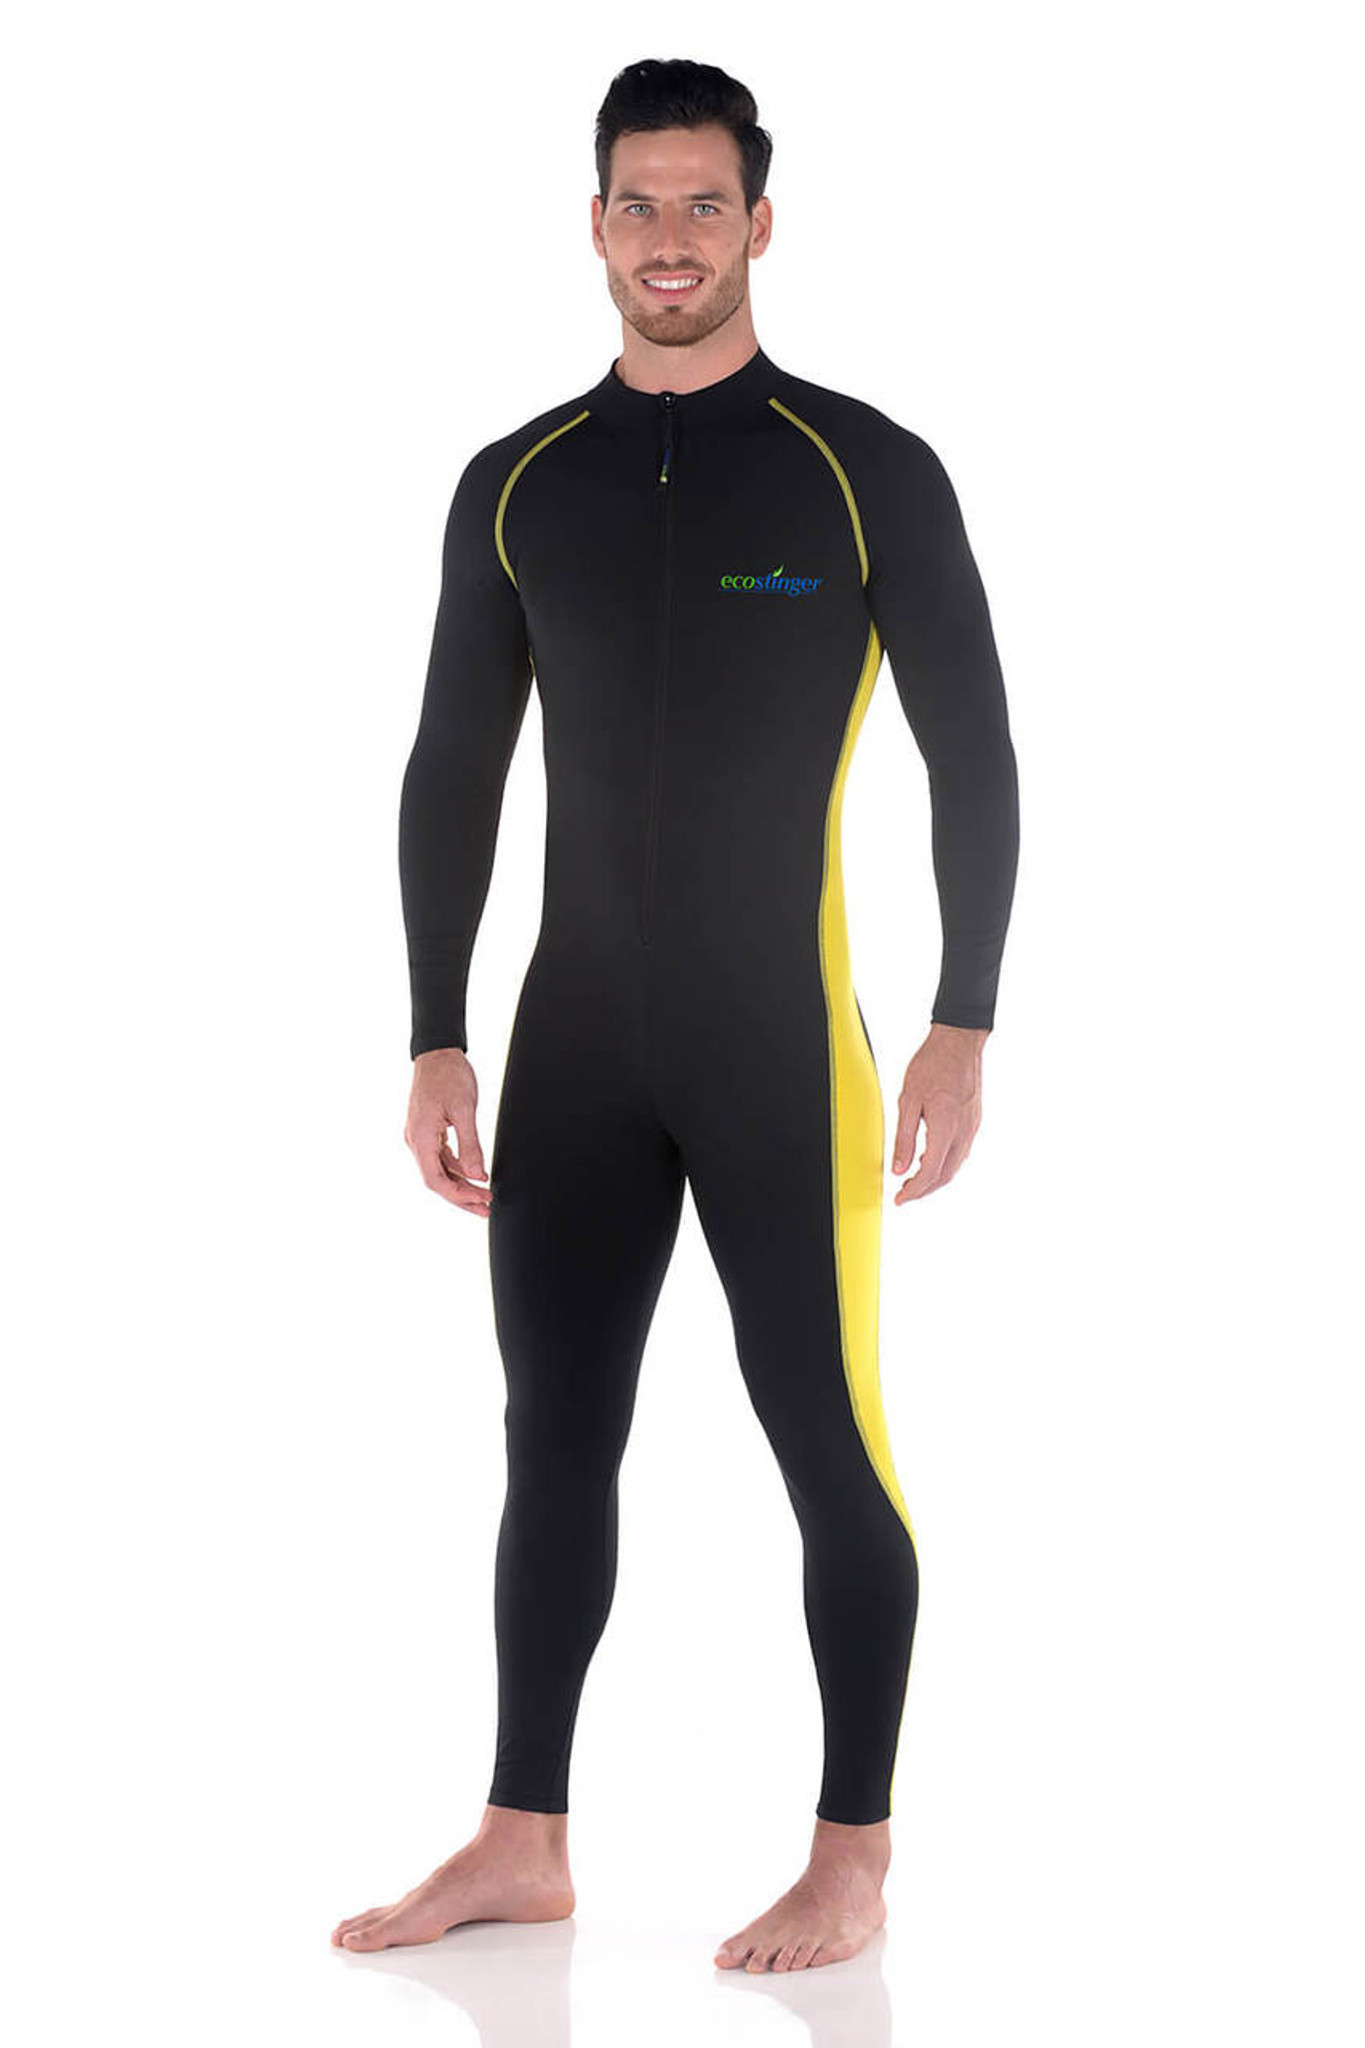 3bb59a592a Men Full Body Swimsuit Sun Guard Stinger Suit Dive Skin UPF50+ Black Yellow  (Chlorine Resistant